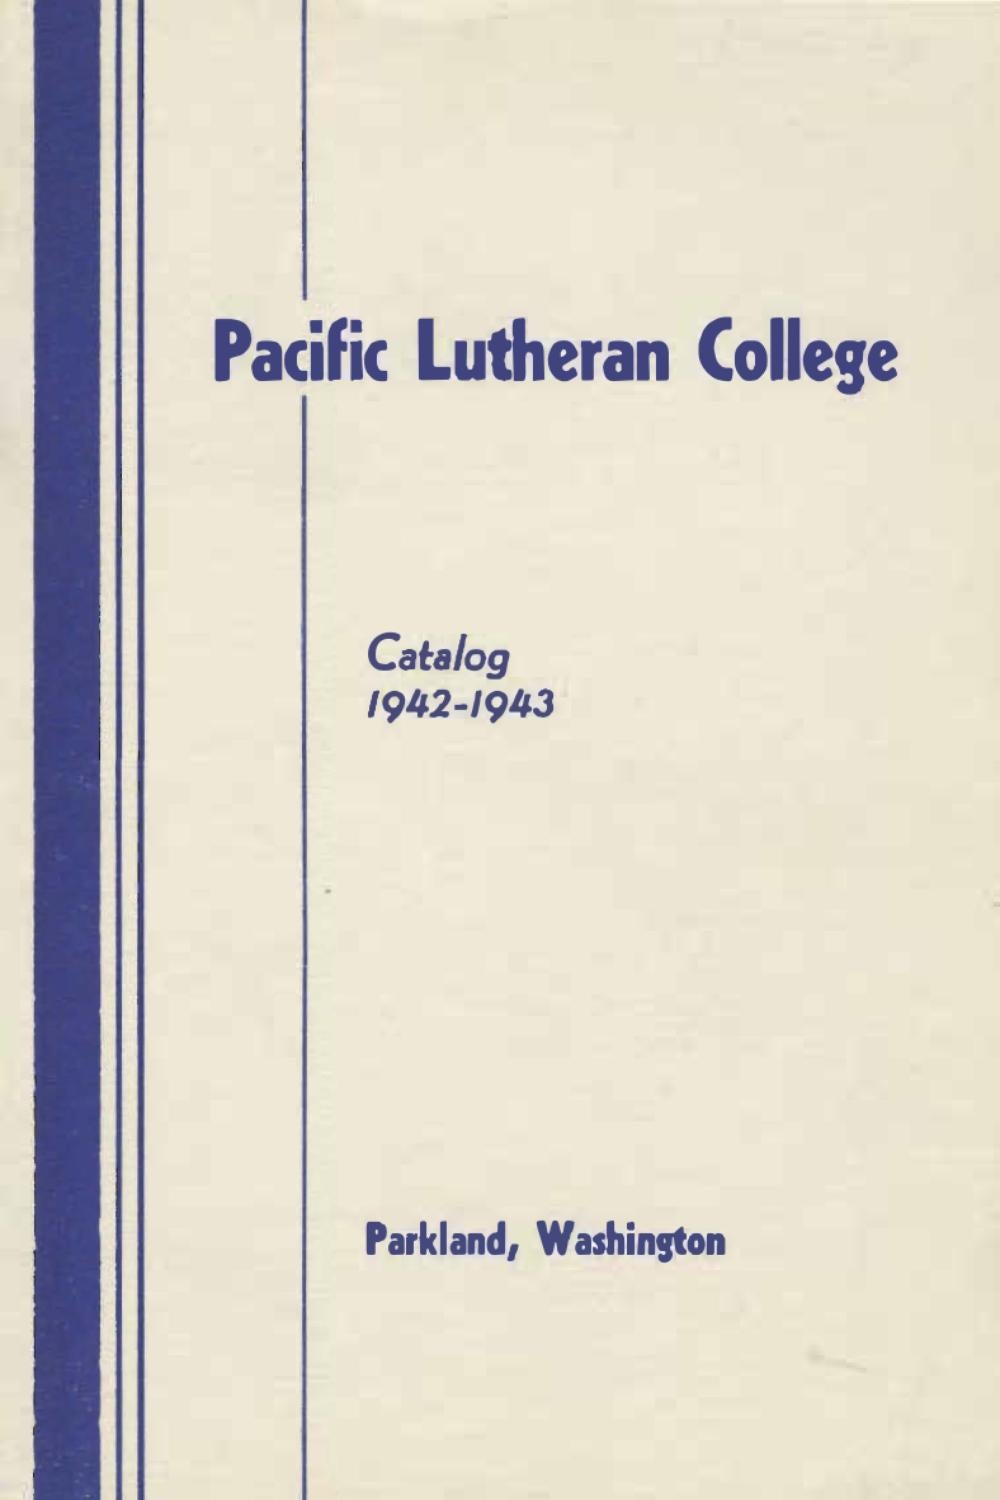 1943 44 Catalog Of Pacific Lutheran College By Electronic Printed Circuit Board Stock Photo C Fiftycents University Archives Issuu